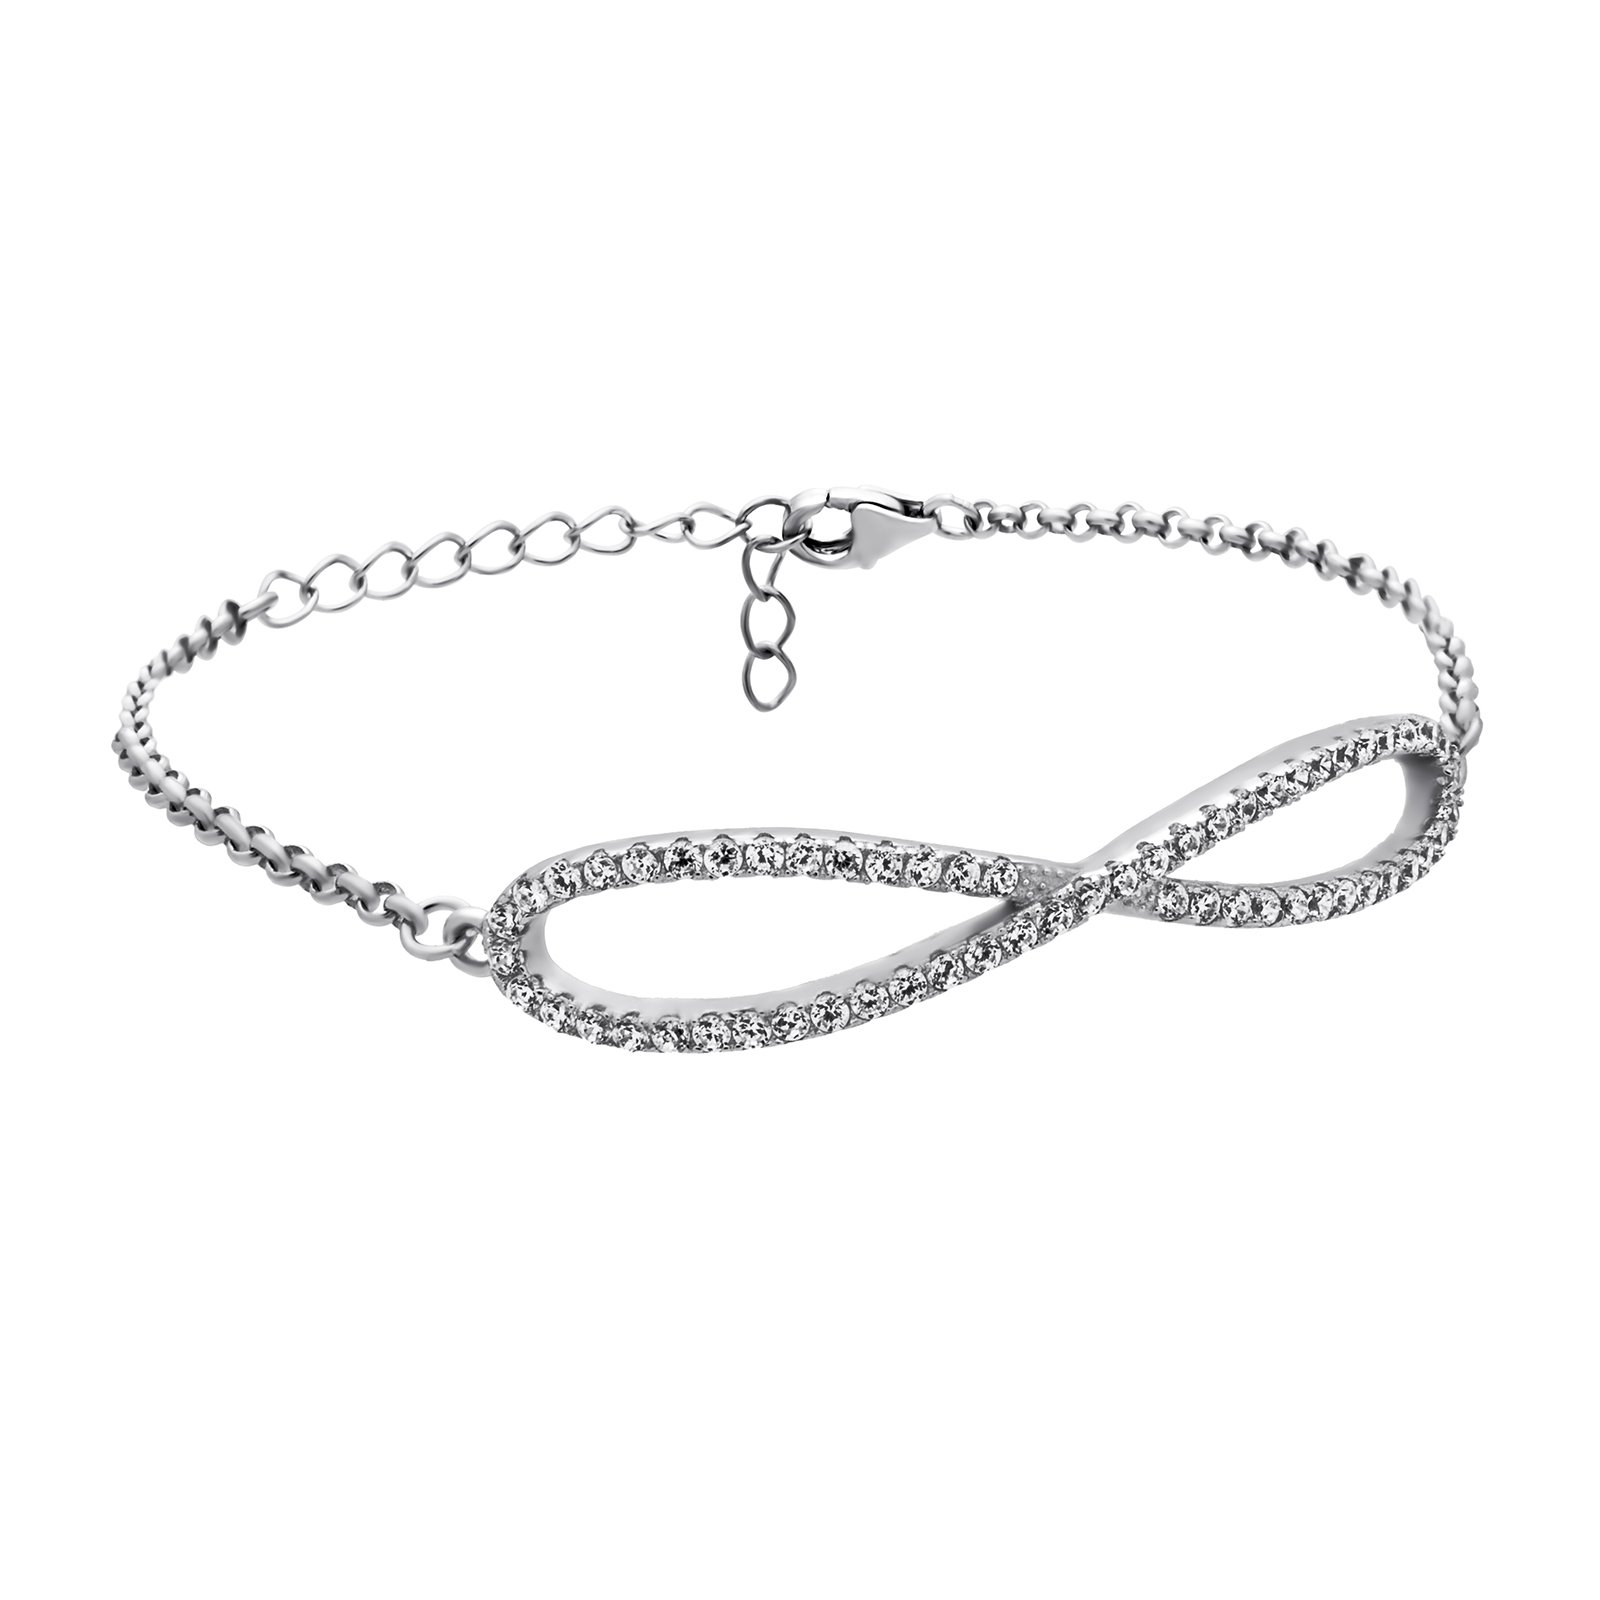 925 Sterling Silver Infinity Bracelet Double Infinity CZ Crystal Simple Minimalist Jewelry bridesmaid Gifts,Large Infinity Charm Bracelet,3.5 gram,Lobster Clasp,Gift For Her